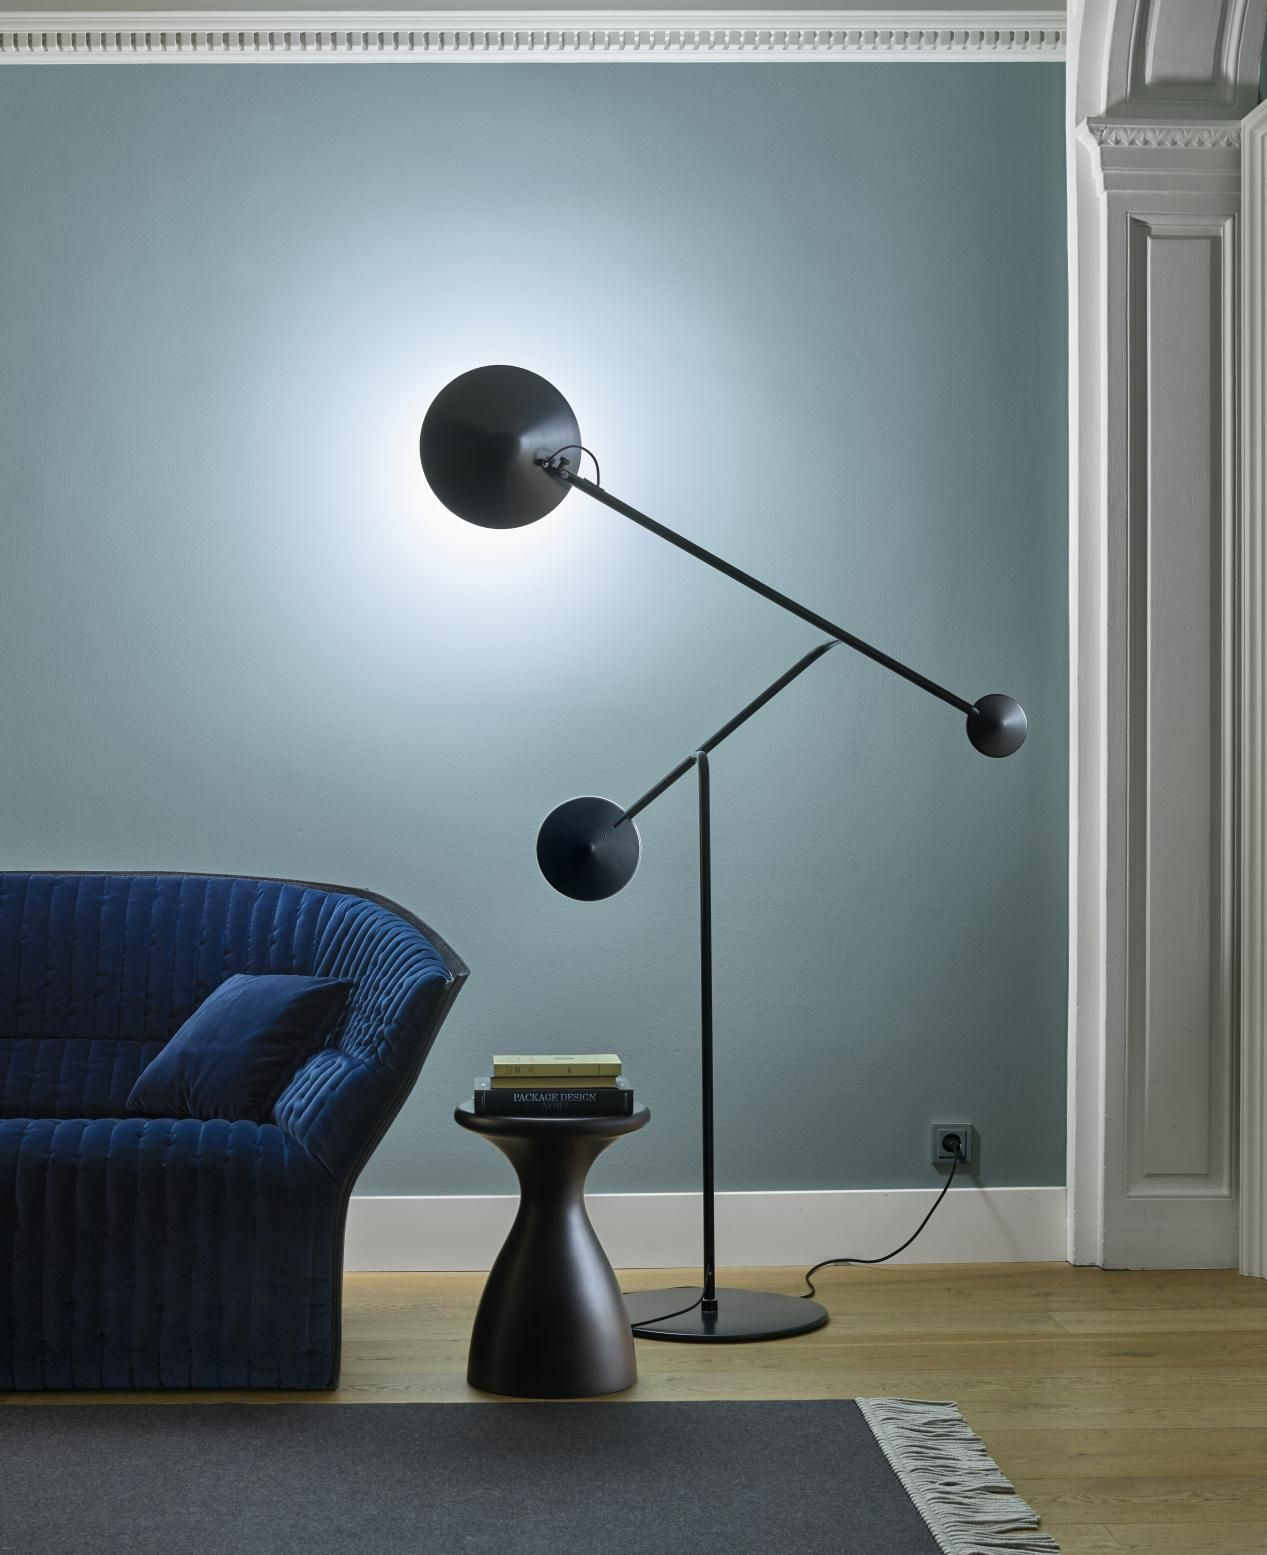 CINETIQUE floor lamp, by Martin Hirth